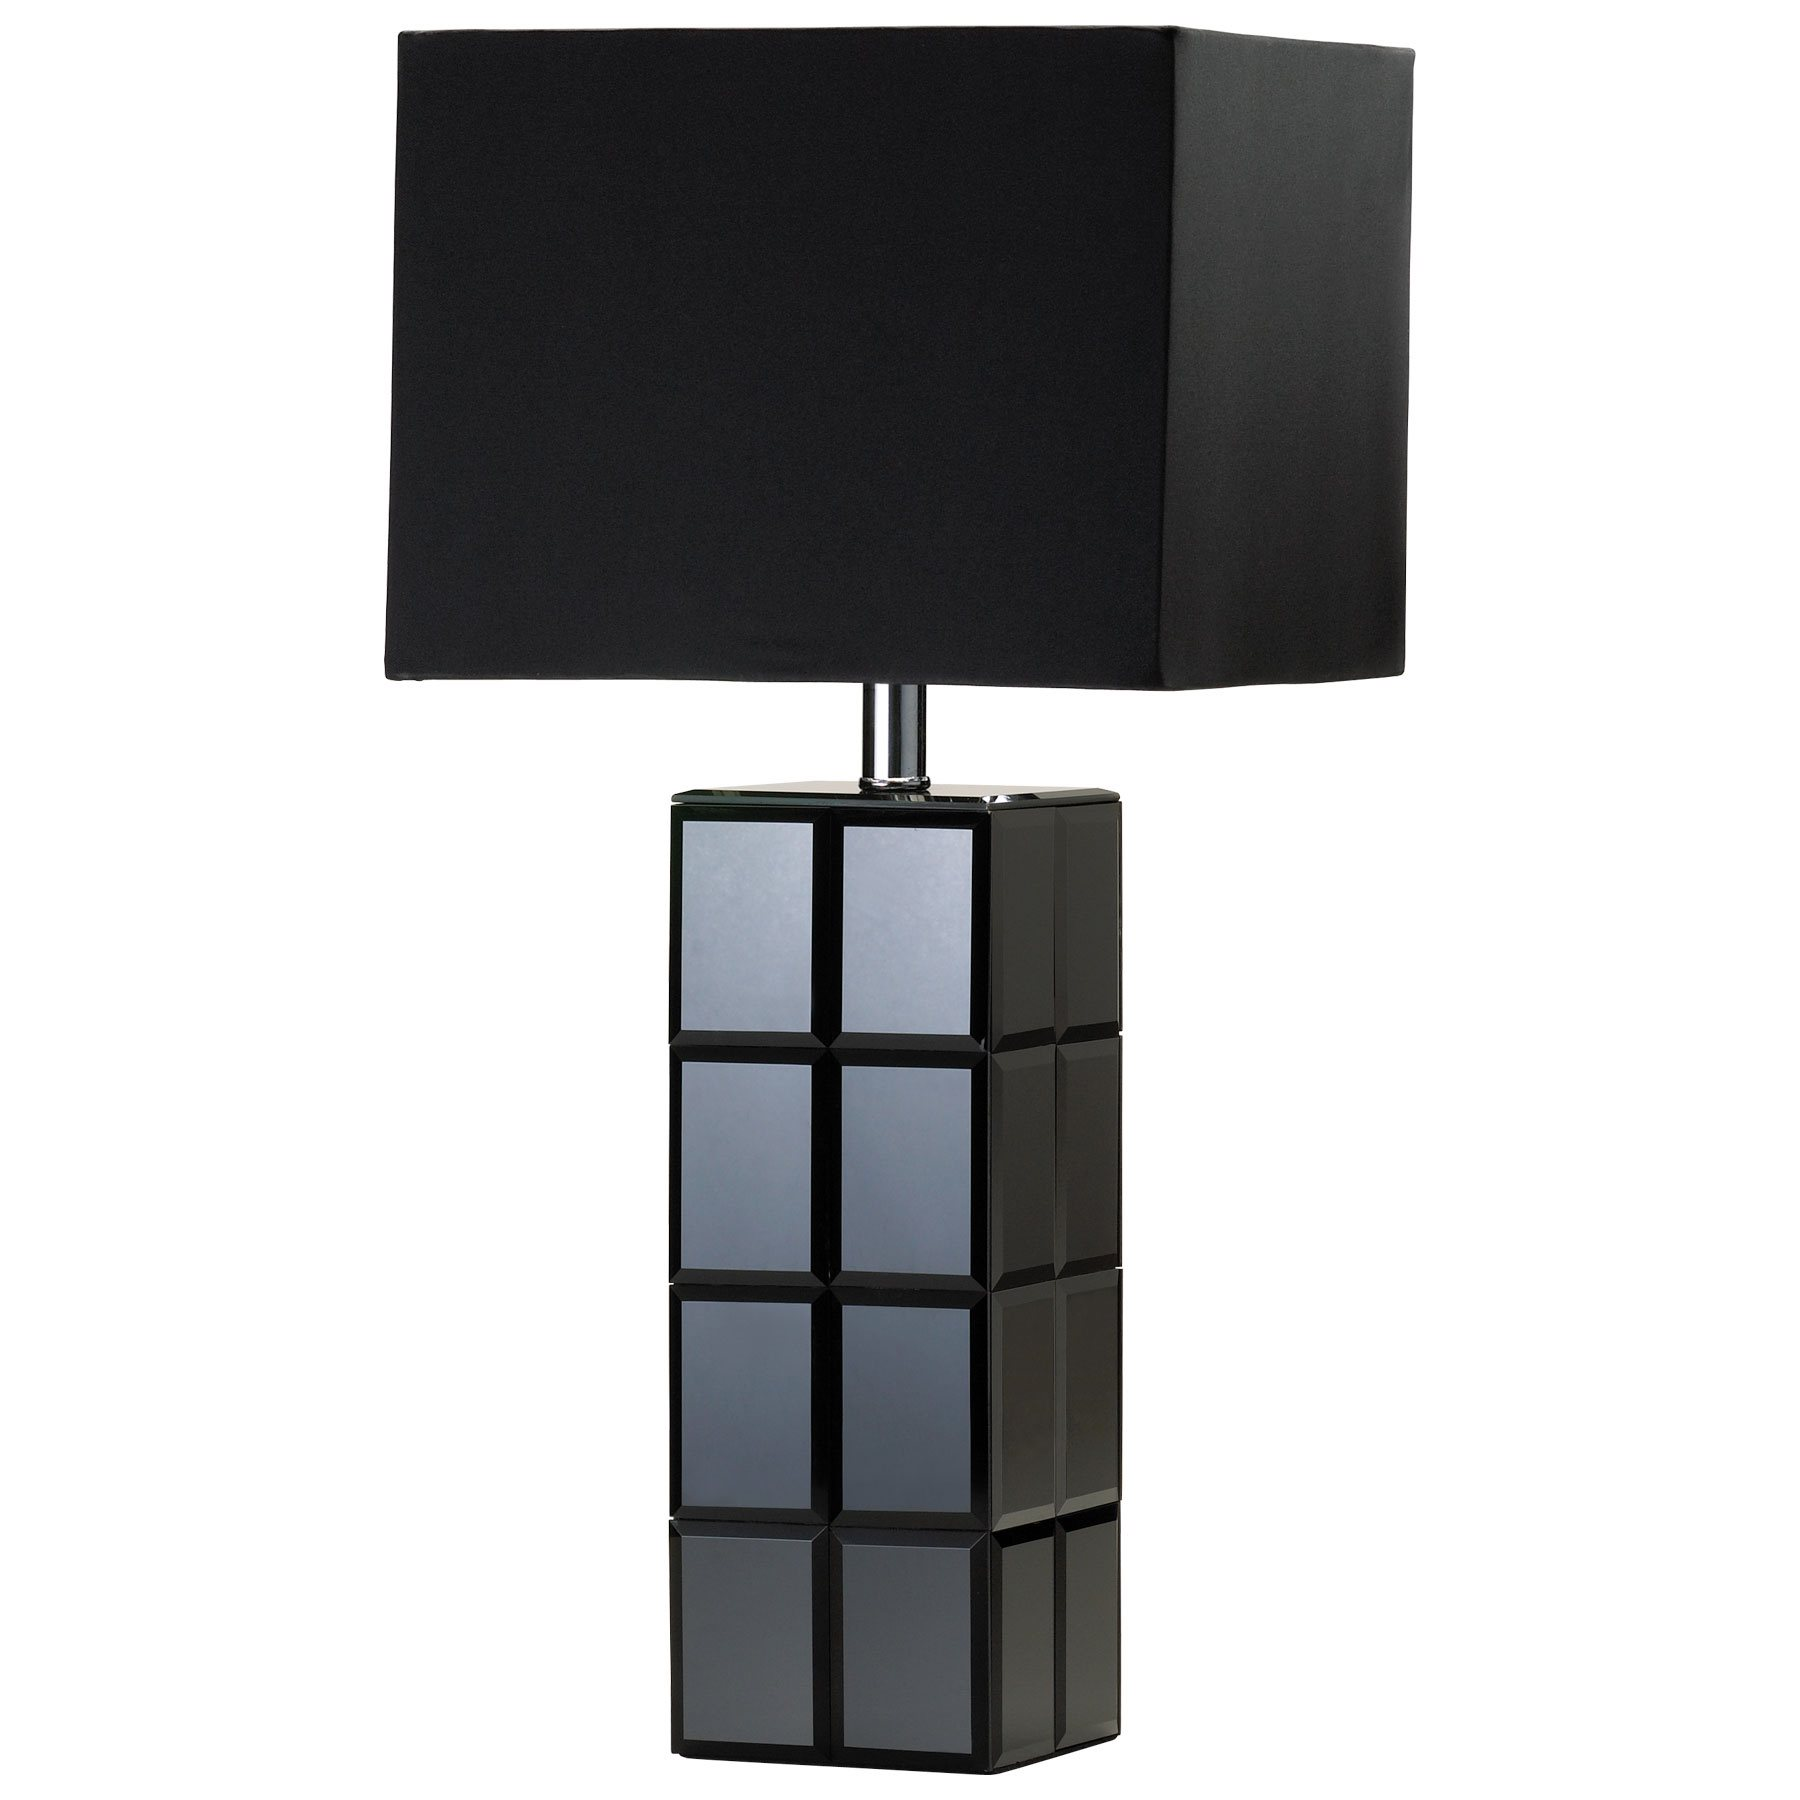 Ultra Modern Table Lamps Cyan Design 04121 Ultra Contemporary Table Lamp Cn 04121